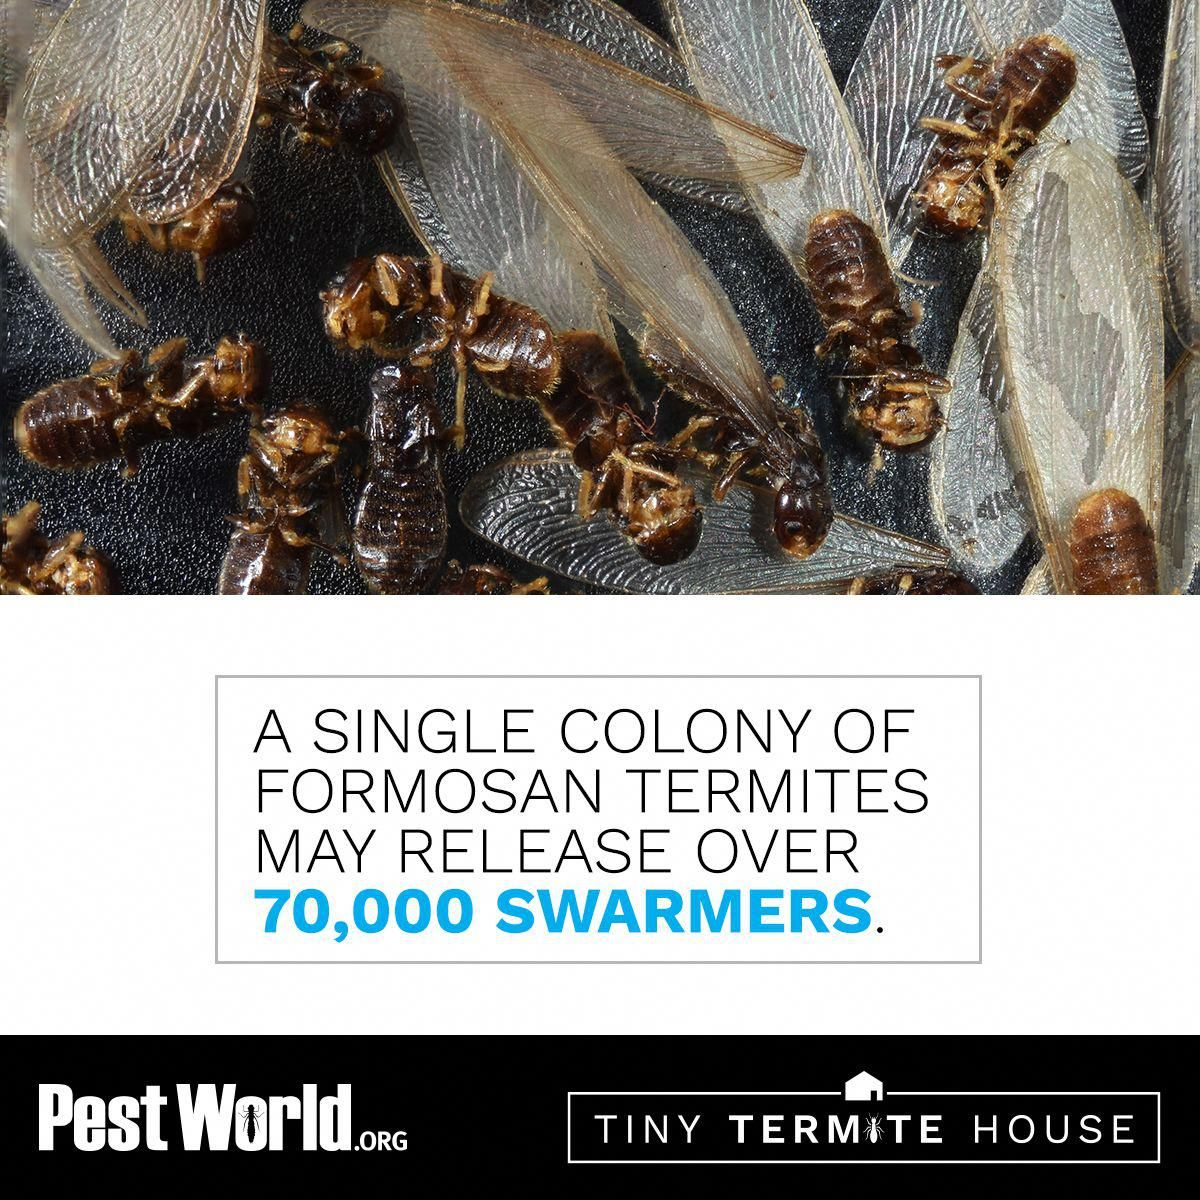 You Re Not Going To Want Termite Swarmers Around Your Home Learn More About Formosan Termites Here Subterraneante Termites Termite Control Termite Treatment